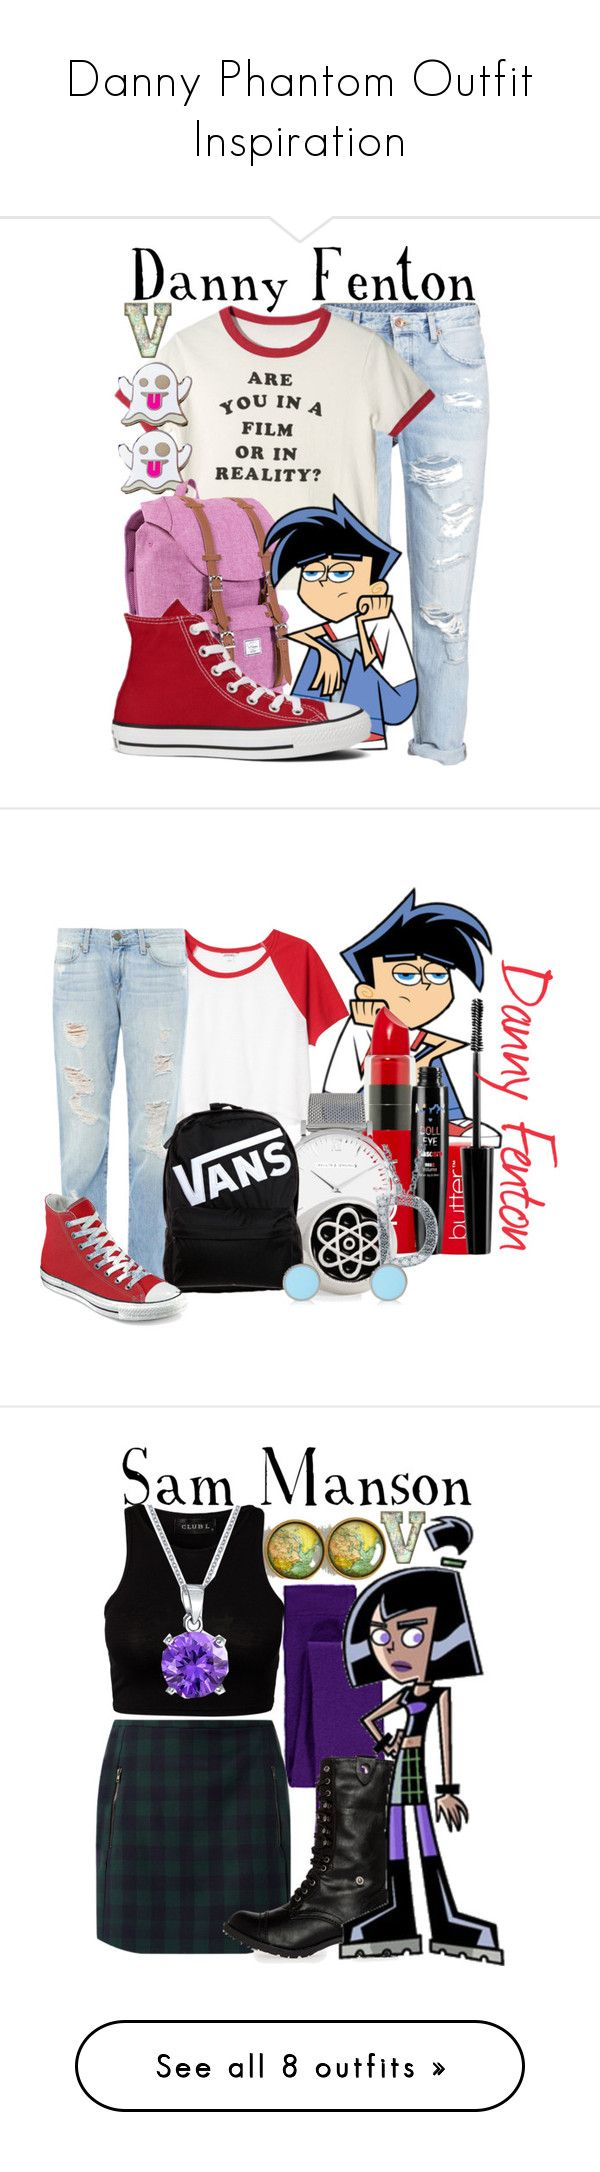 """""""Danny Phantom Outfit Inspiration"""" by xo-jasmin ❤ liked on Polyvore featuring H&M, PINTRILL, Herschel Supply Co., Fenton, Converse, Monki, NYX, Paige Denim, Larsson & Jennings and Crislu"""